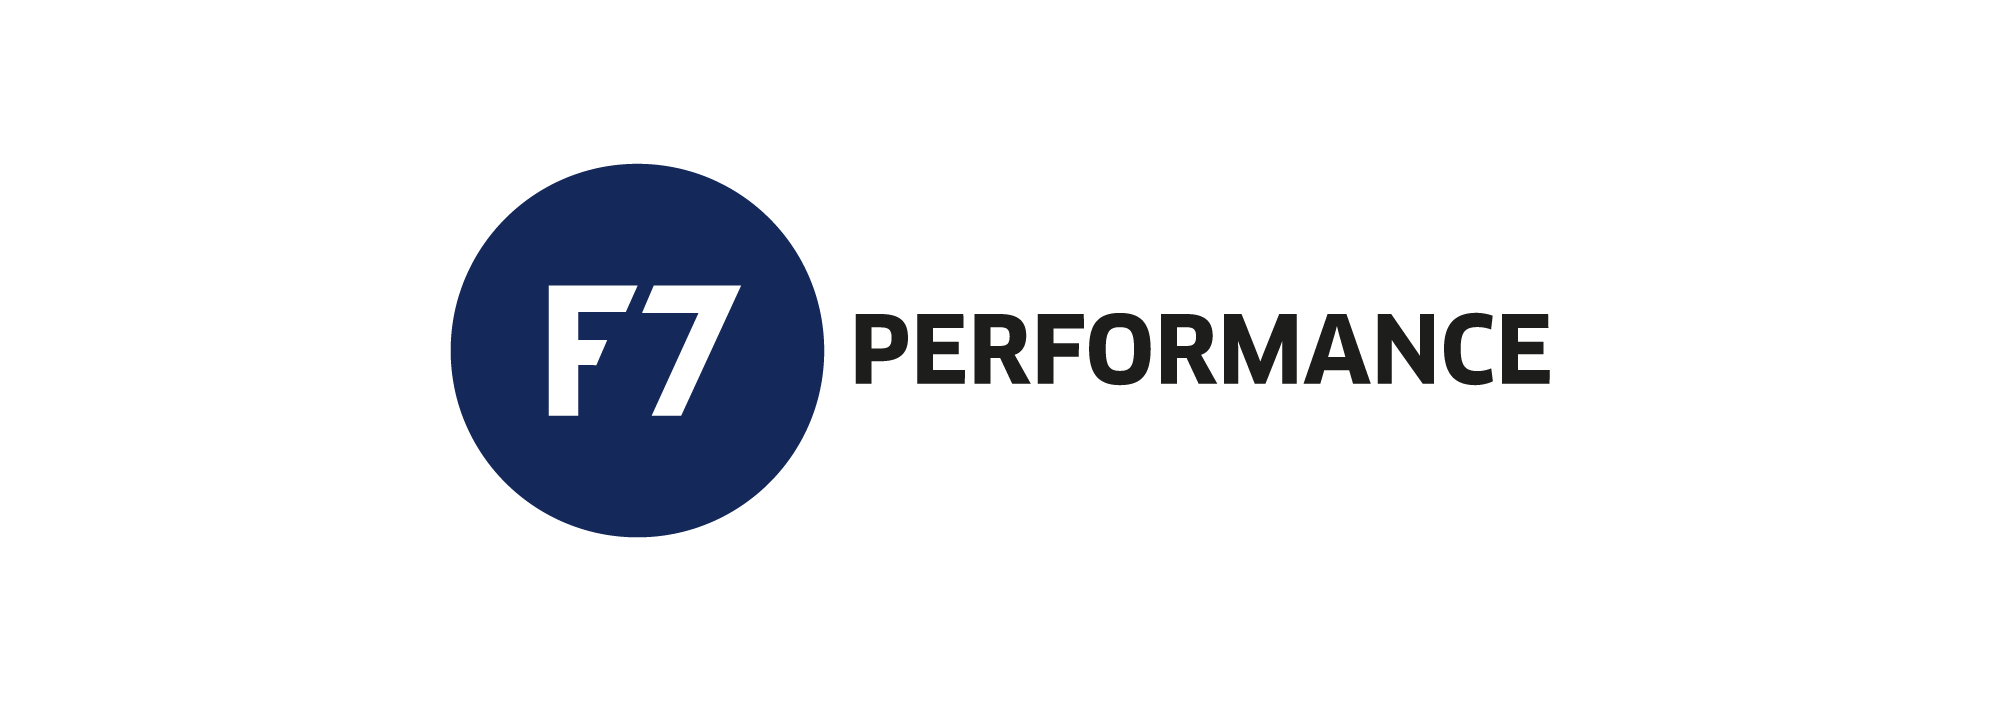 F7 Performance Logo